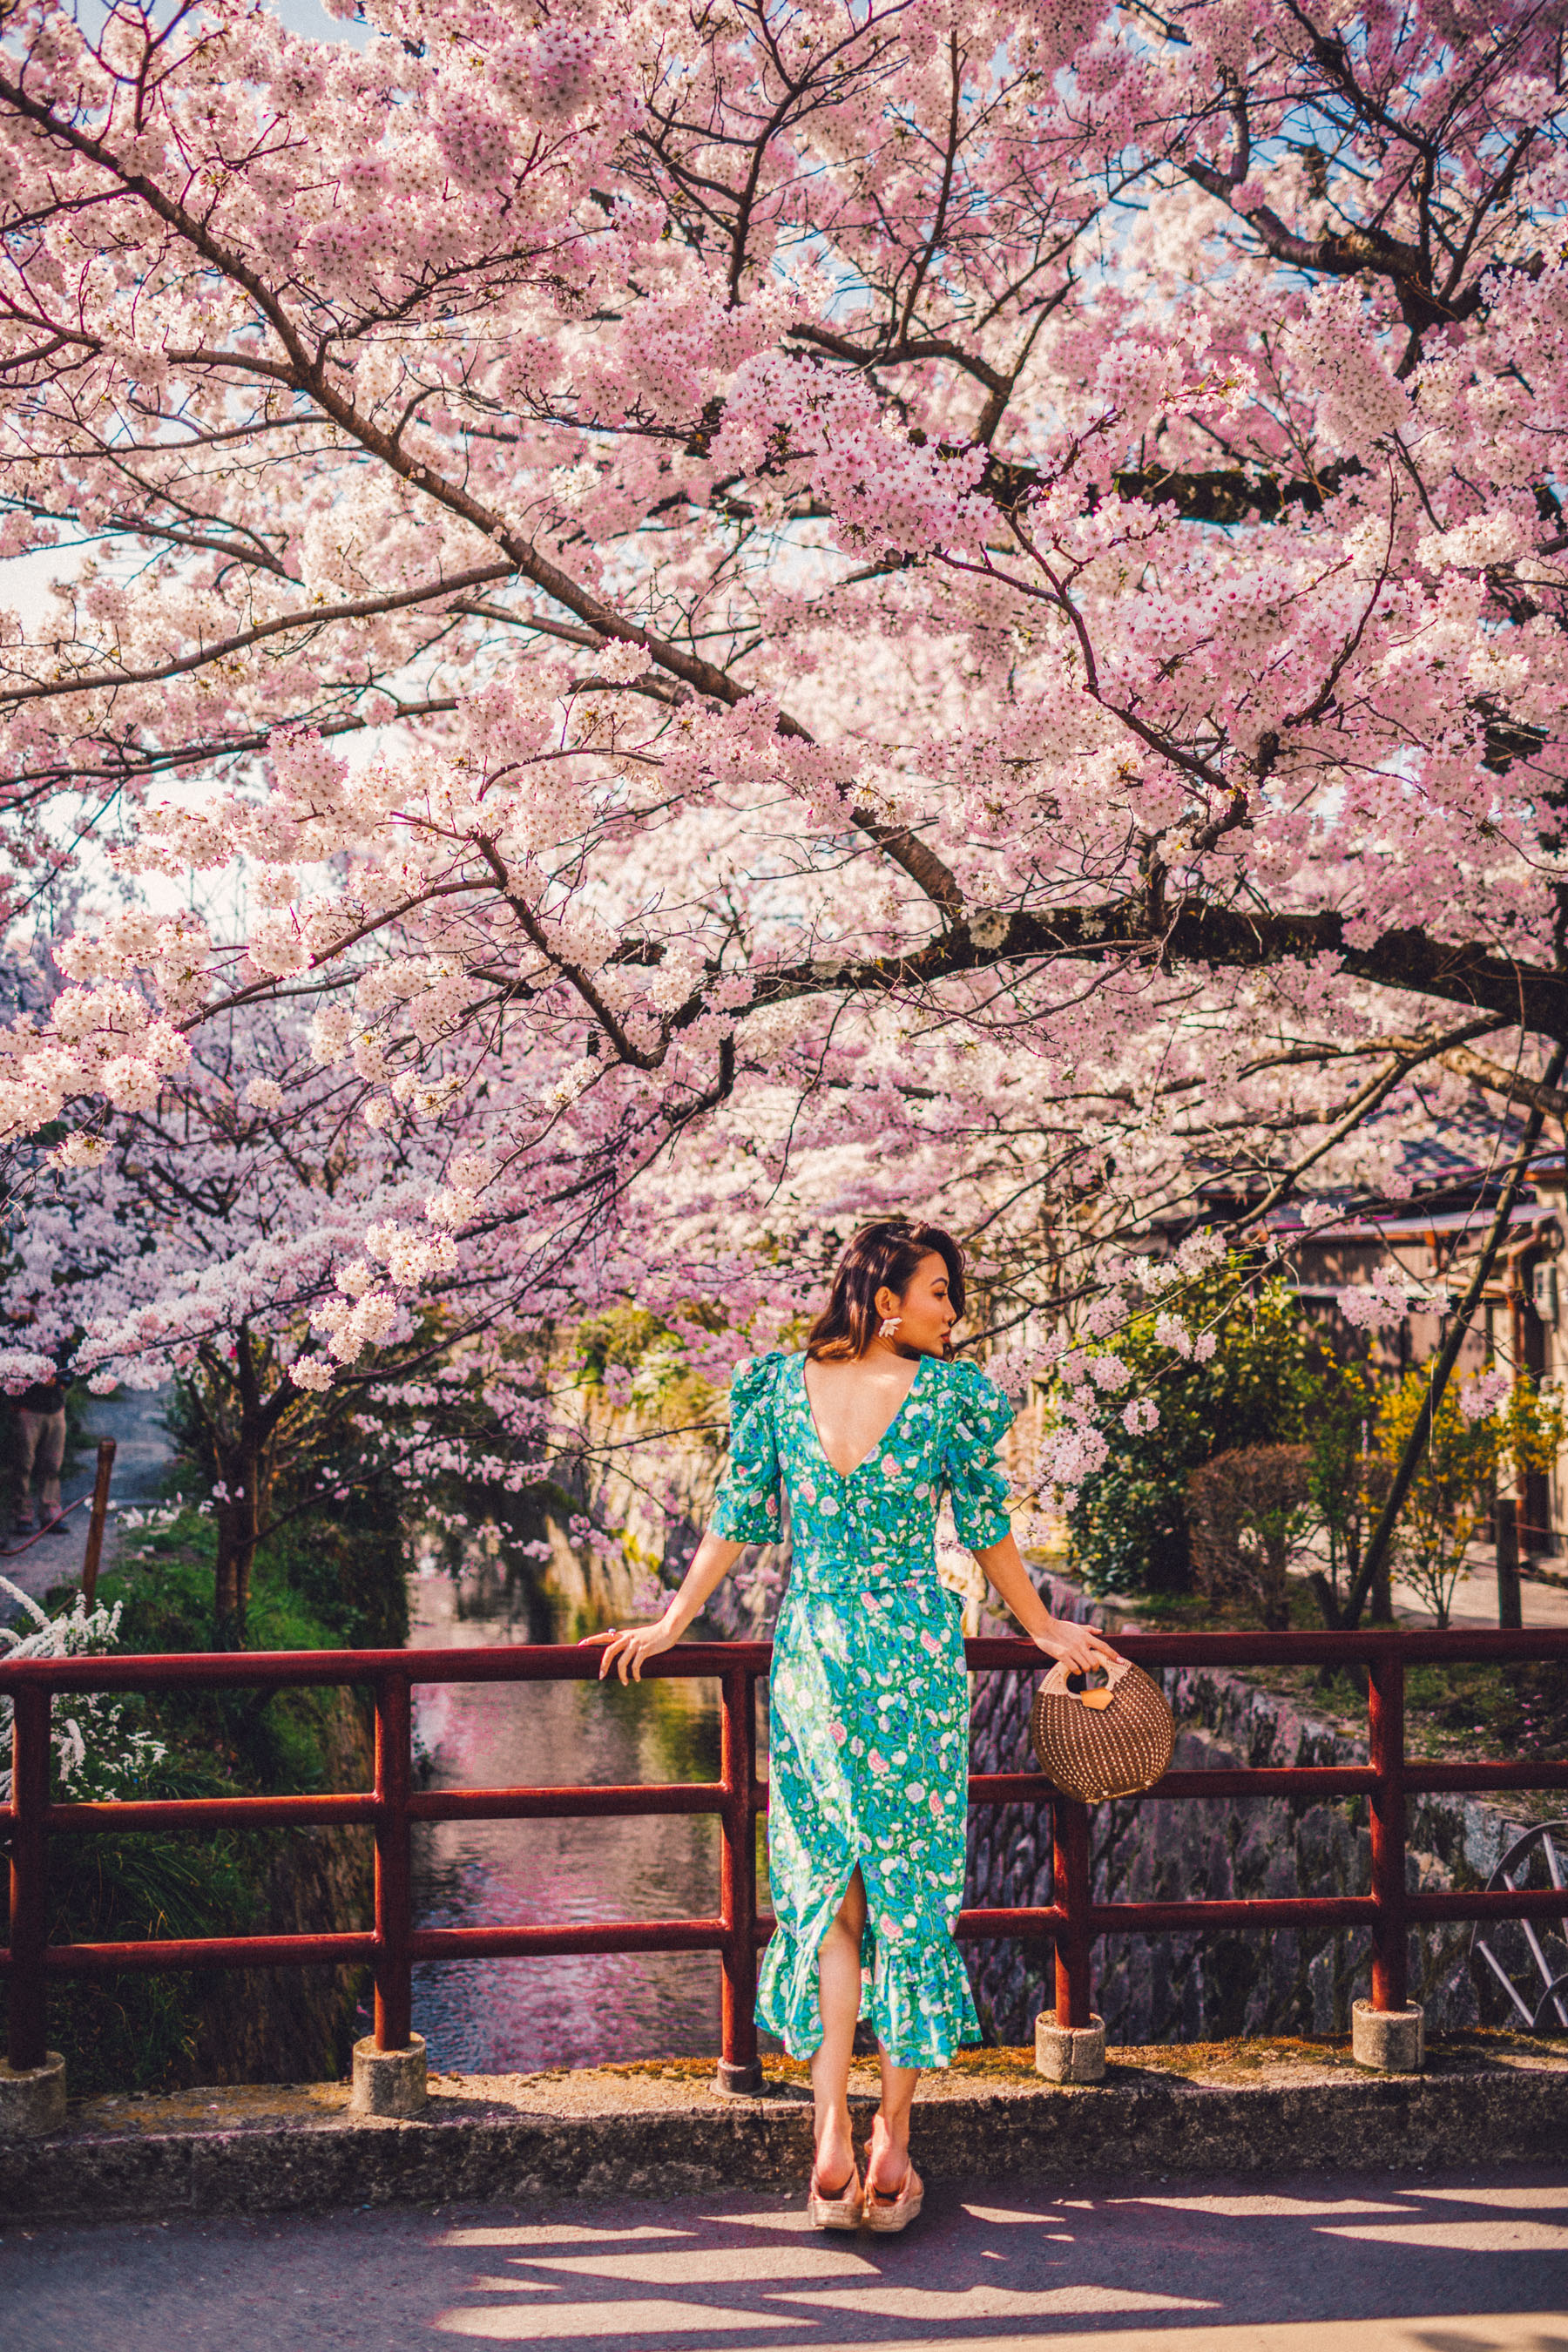 7 Best Spots for Cherry Blossoms in Japan - Kyoto - Philosopher Path, luxury travel blogger // Notjessfashion.com